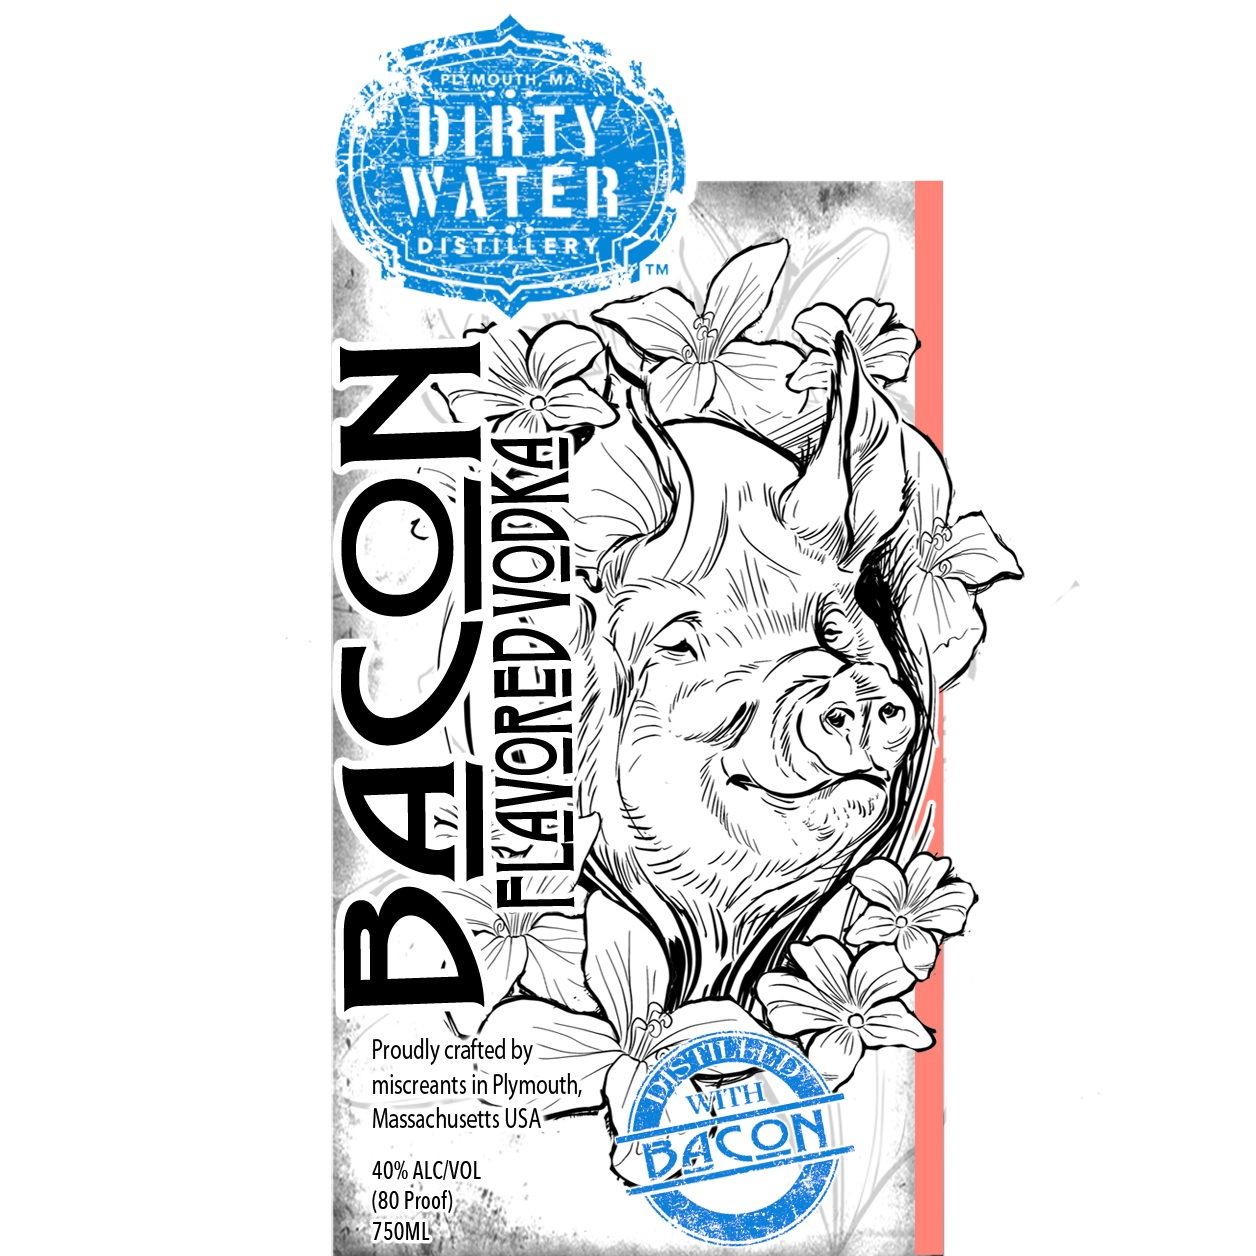 Sue-E Bacon Vodka  - Yup, we did it. We actually cooked bacon, infused our spirit, and distilled it to make a true bacon flavored vodka.